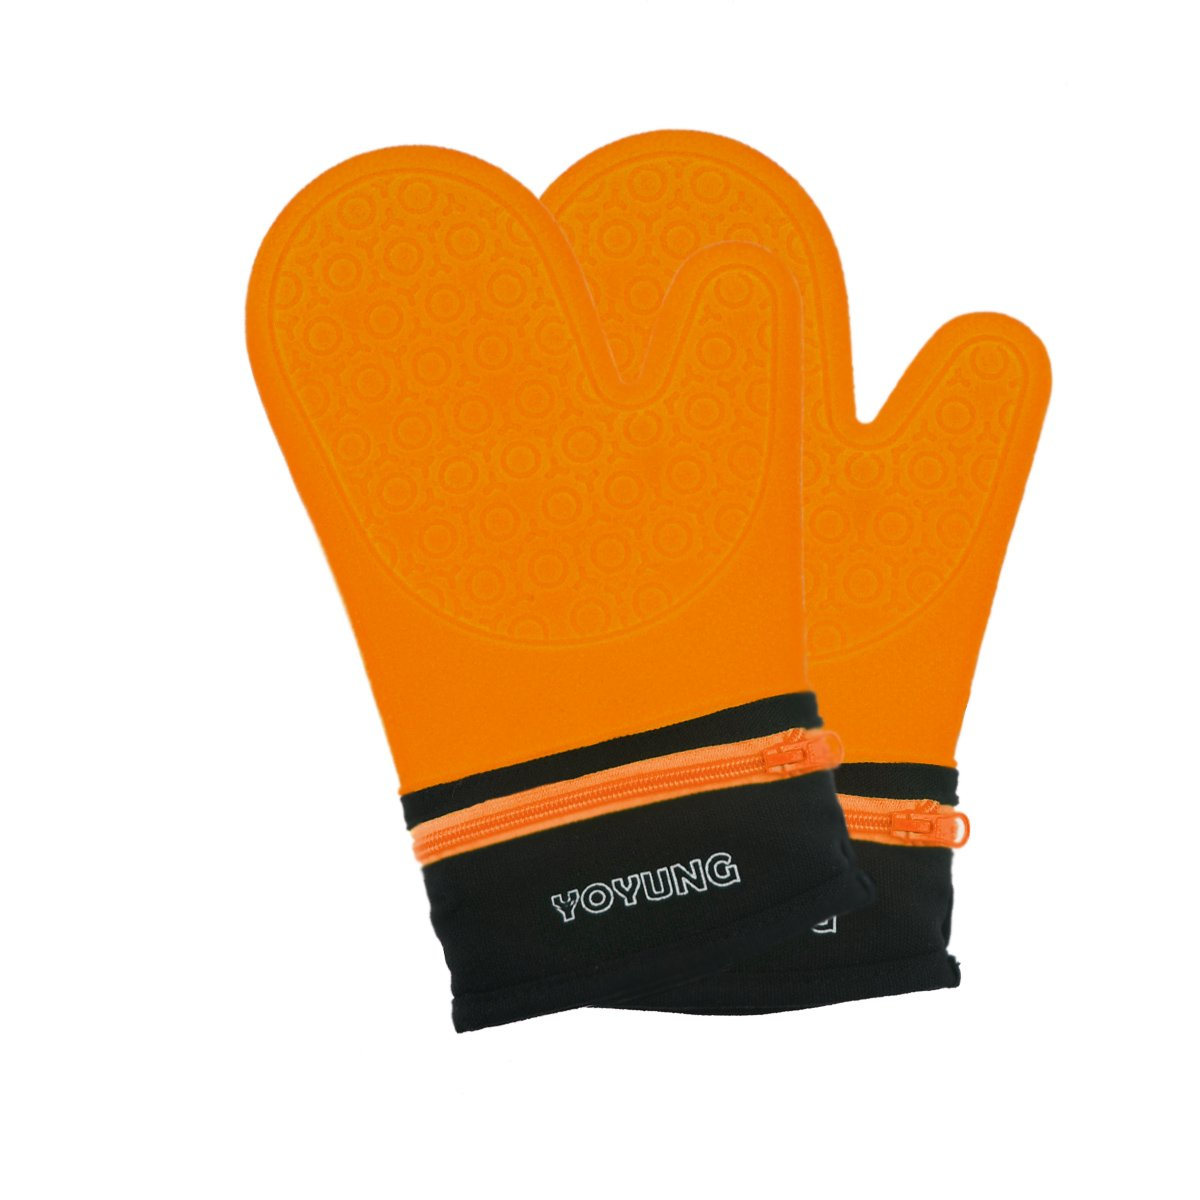 Detachable Silicone Oven Mitt - Oven Mitts with Quilted Cotton Lining -1 Pair of Professional Heat Resistant Potholder Gloves - Washable - Orange